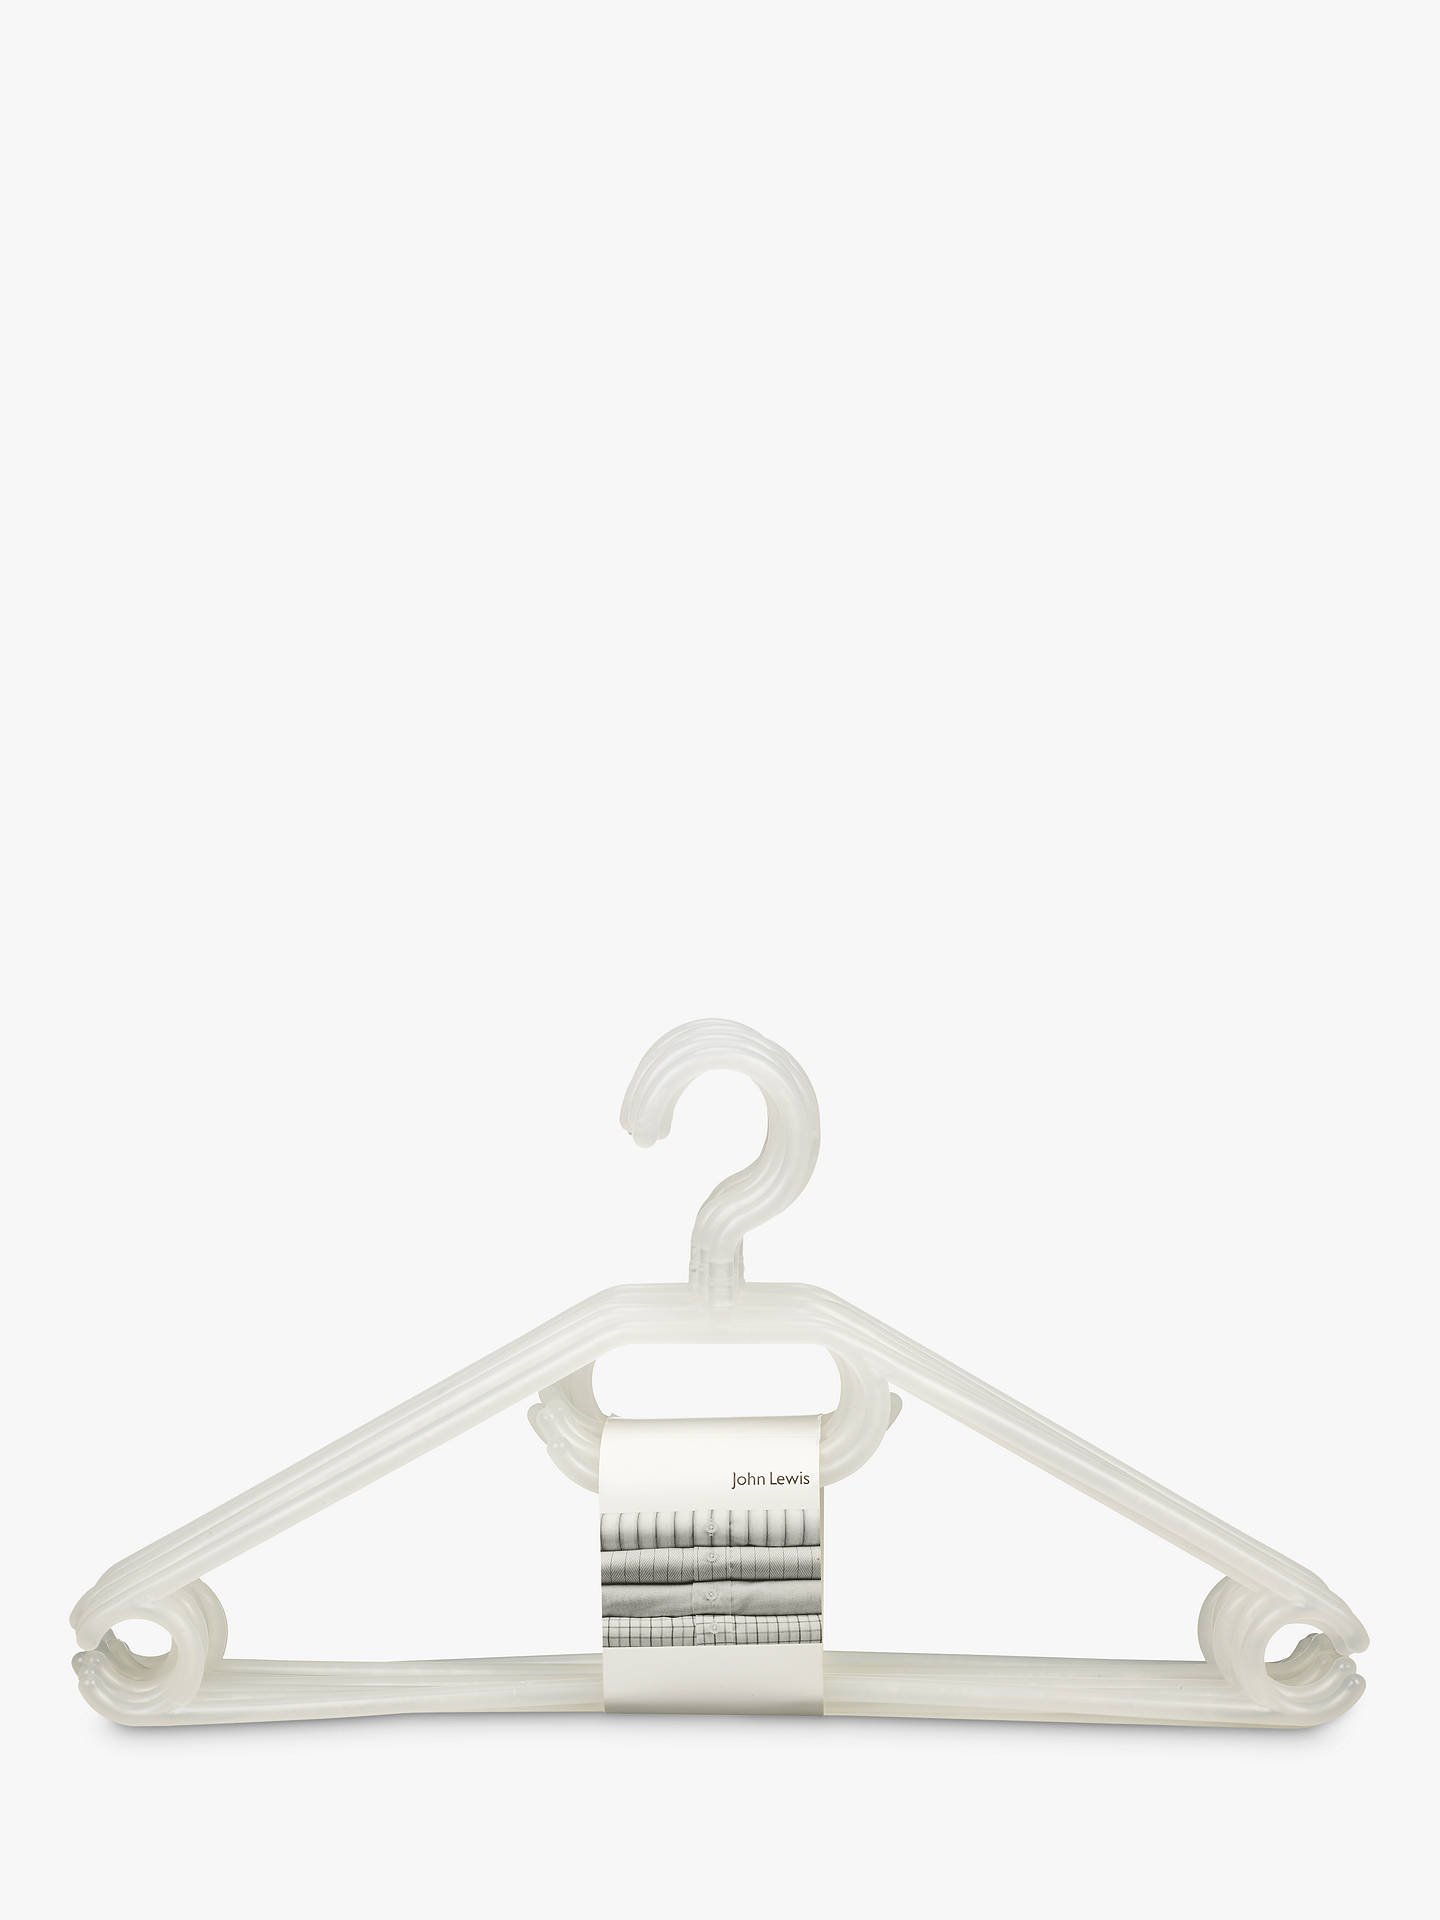 BuyJohn Lewis & Partners Plastic Hangers, Pack of 6 Online at johnlewis.com